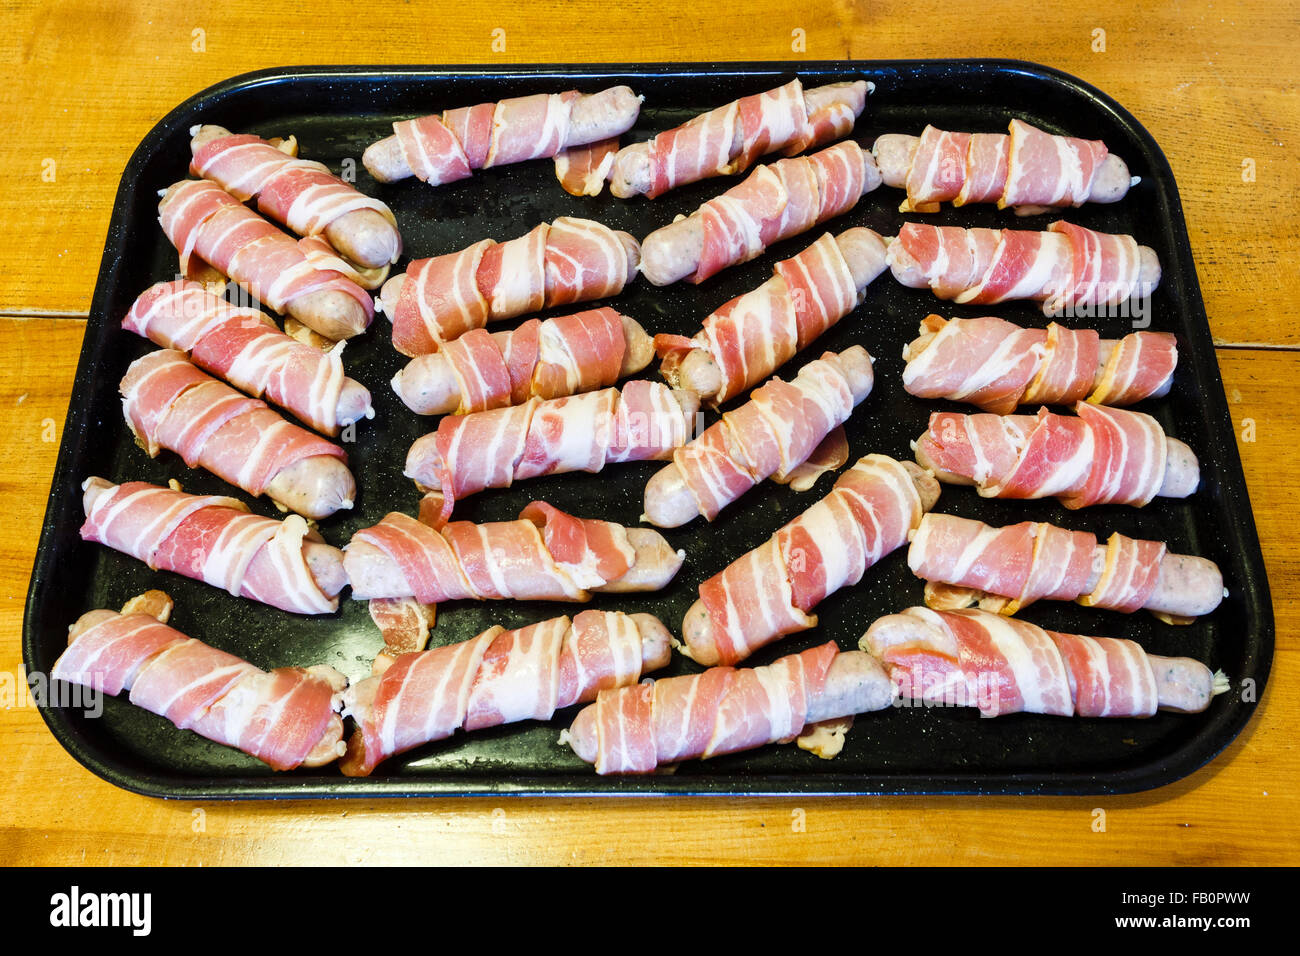 Traditional Christmas food of sausages wrapped in streaky bacon, on a baking tray. England, UK - Stock Image